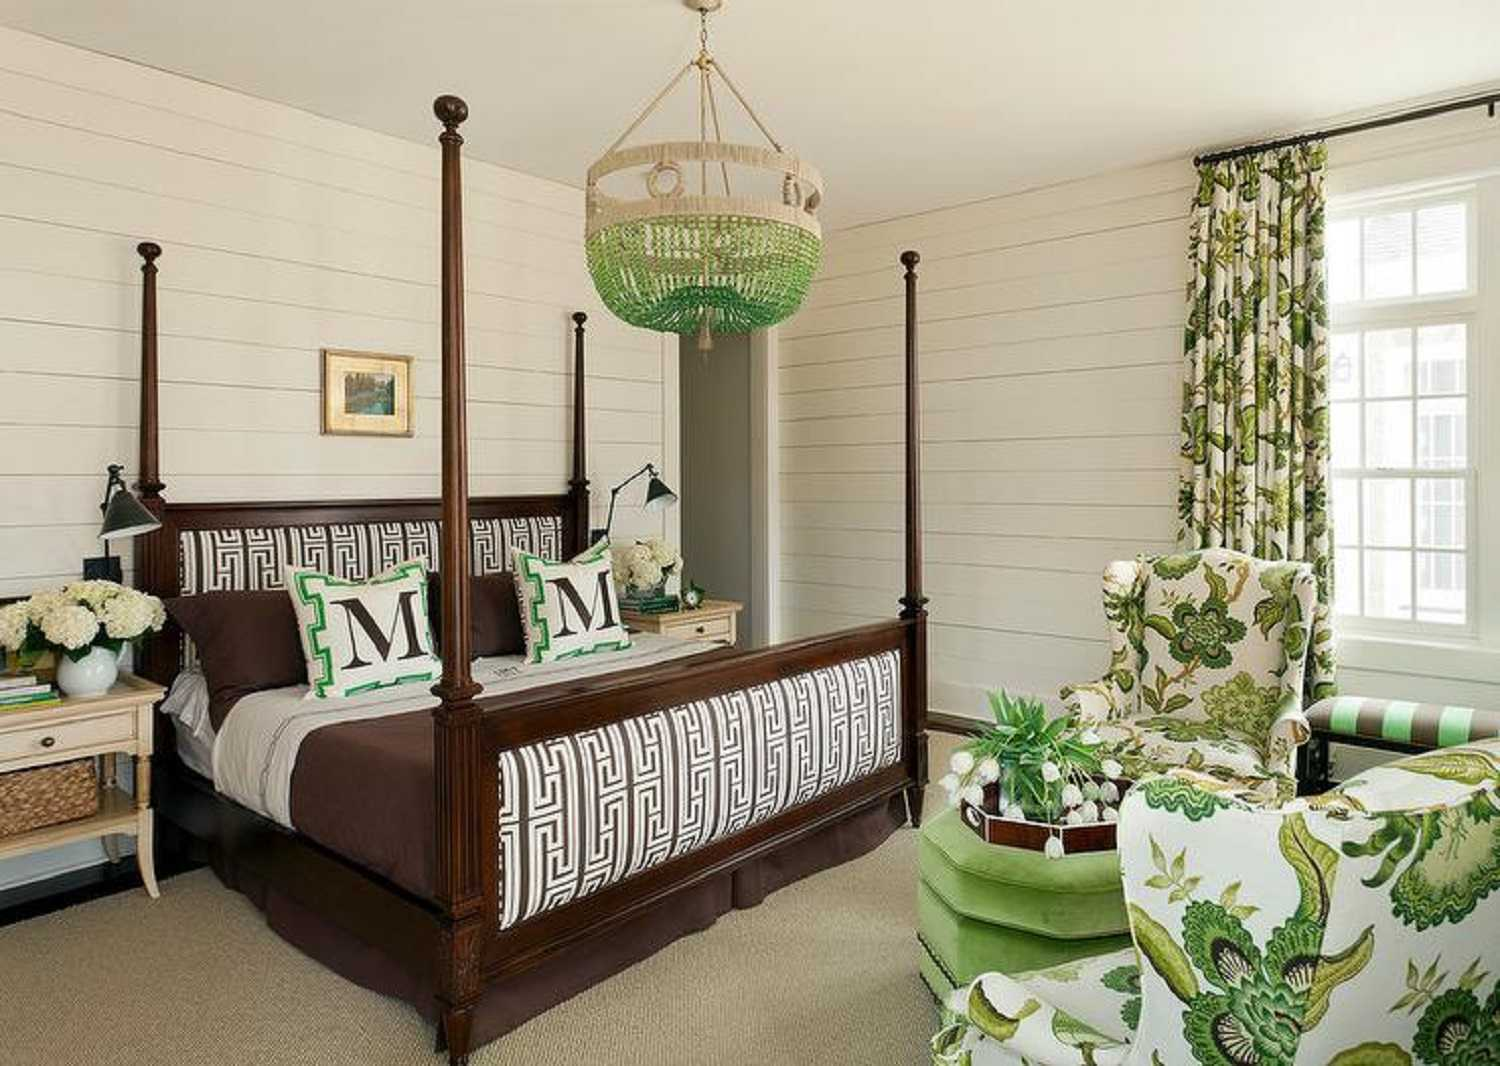 Green and brown bedroom with chandelier